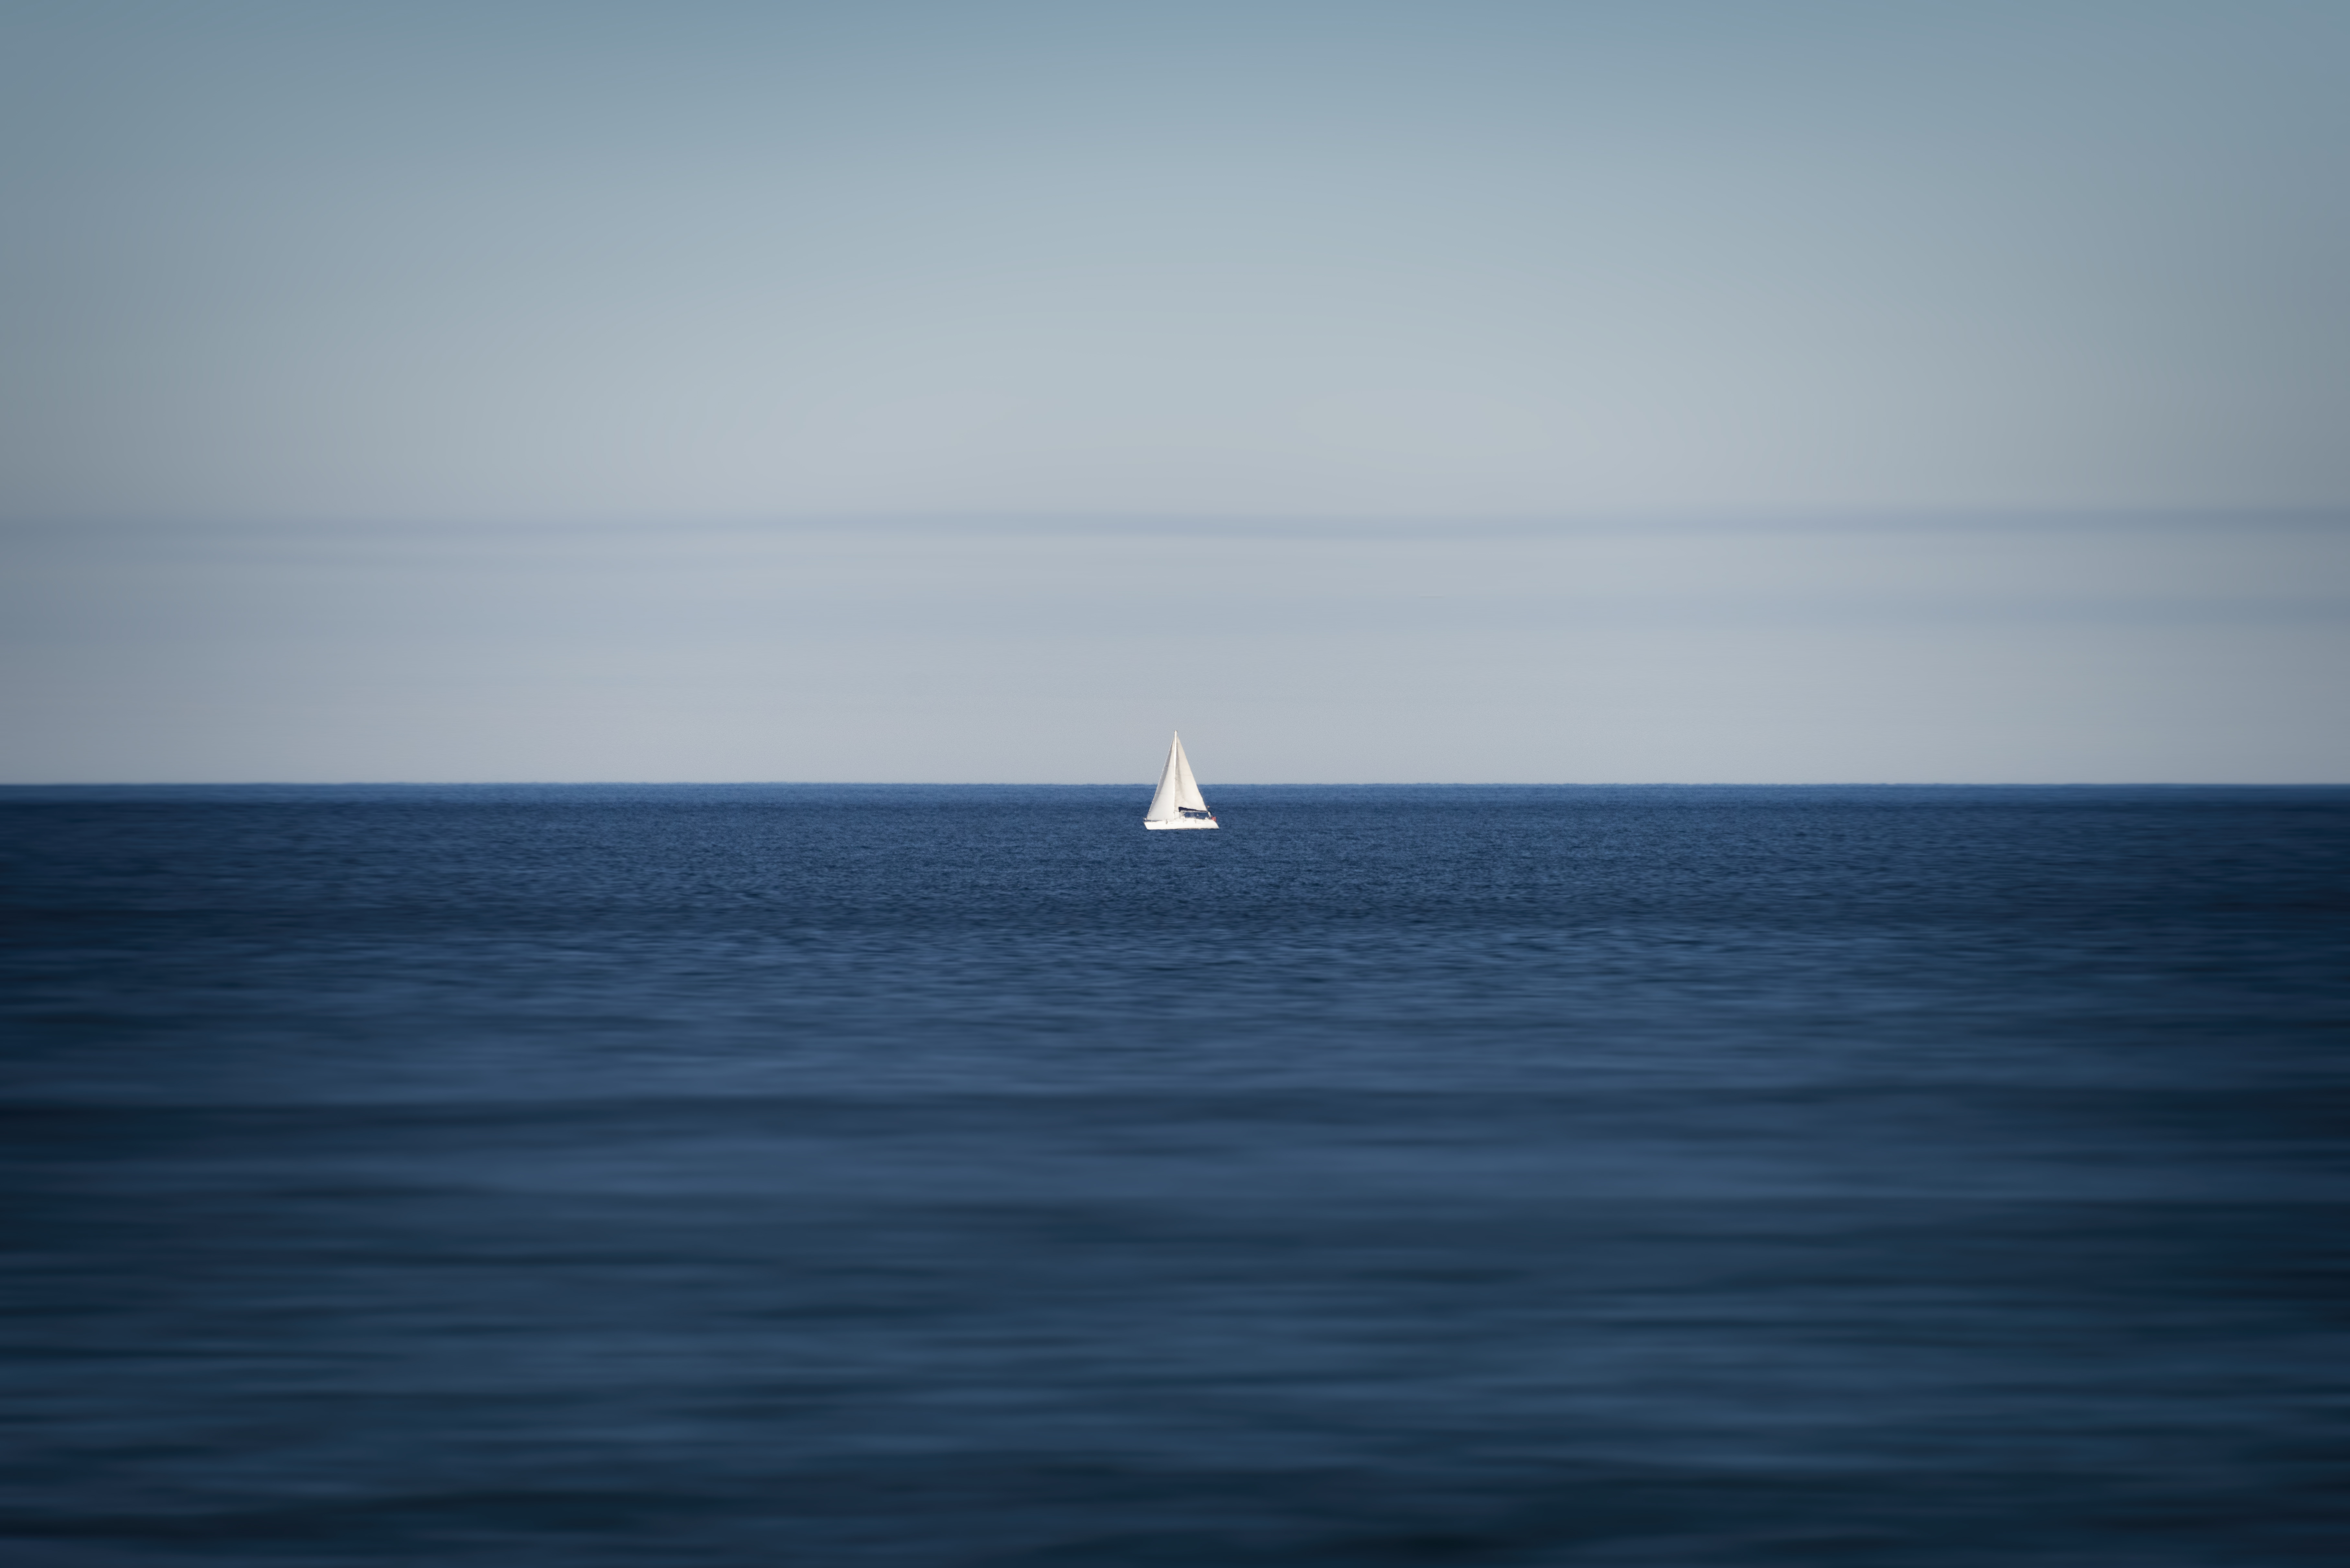 Sail boat in Spain